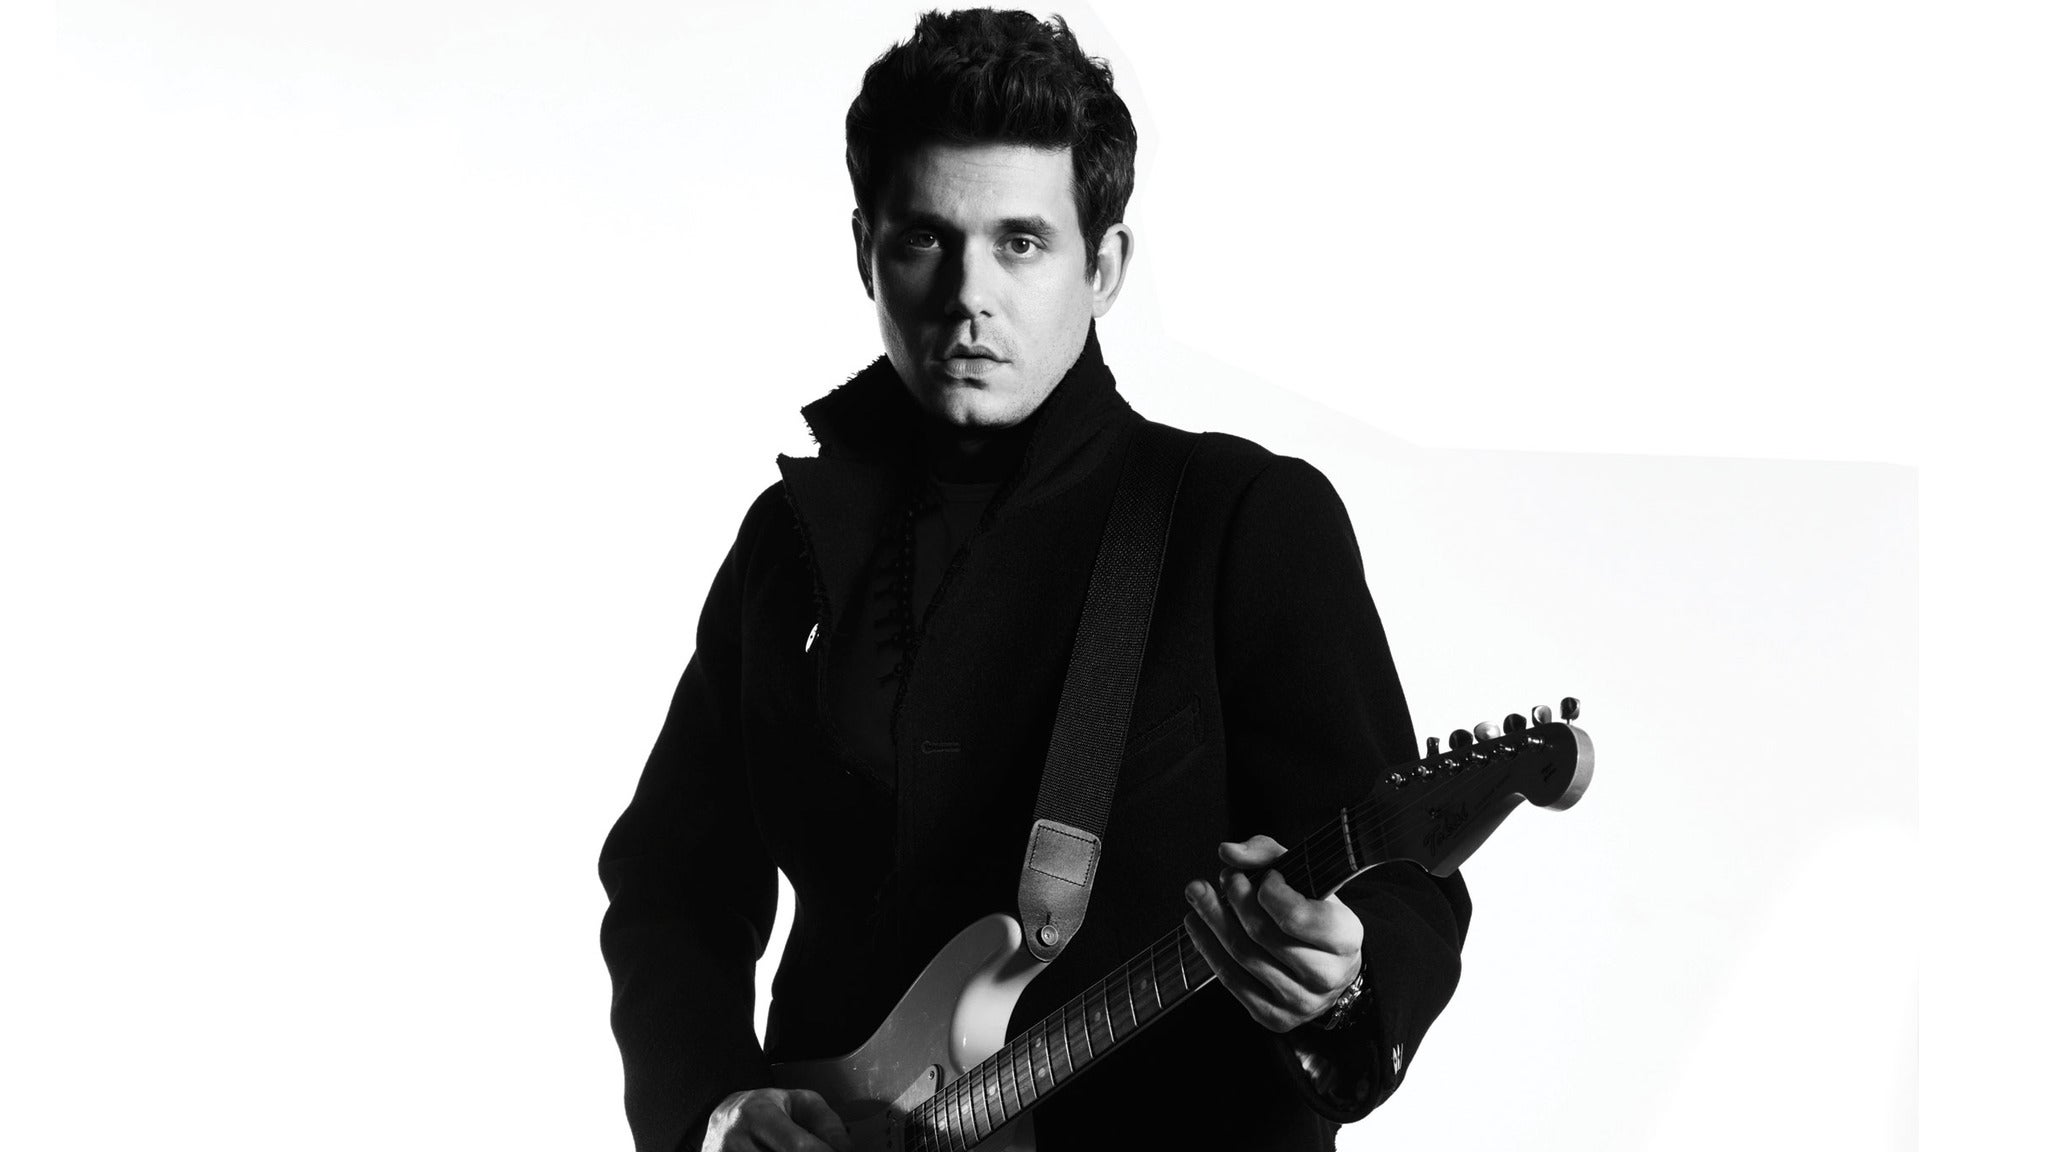 John Mayer at Shoreline Amphitheatre